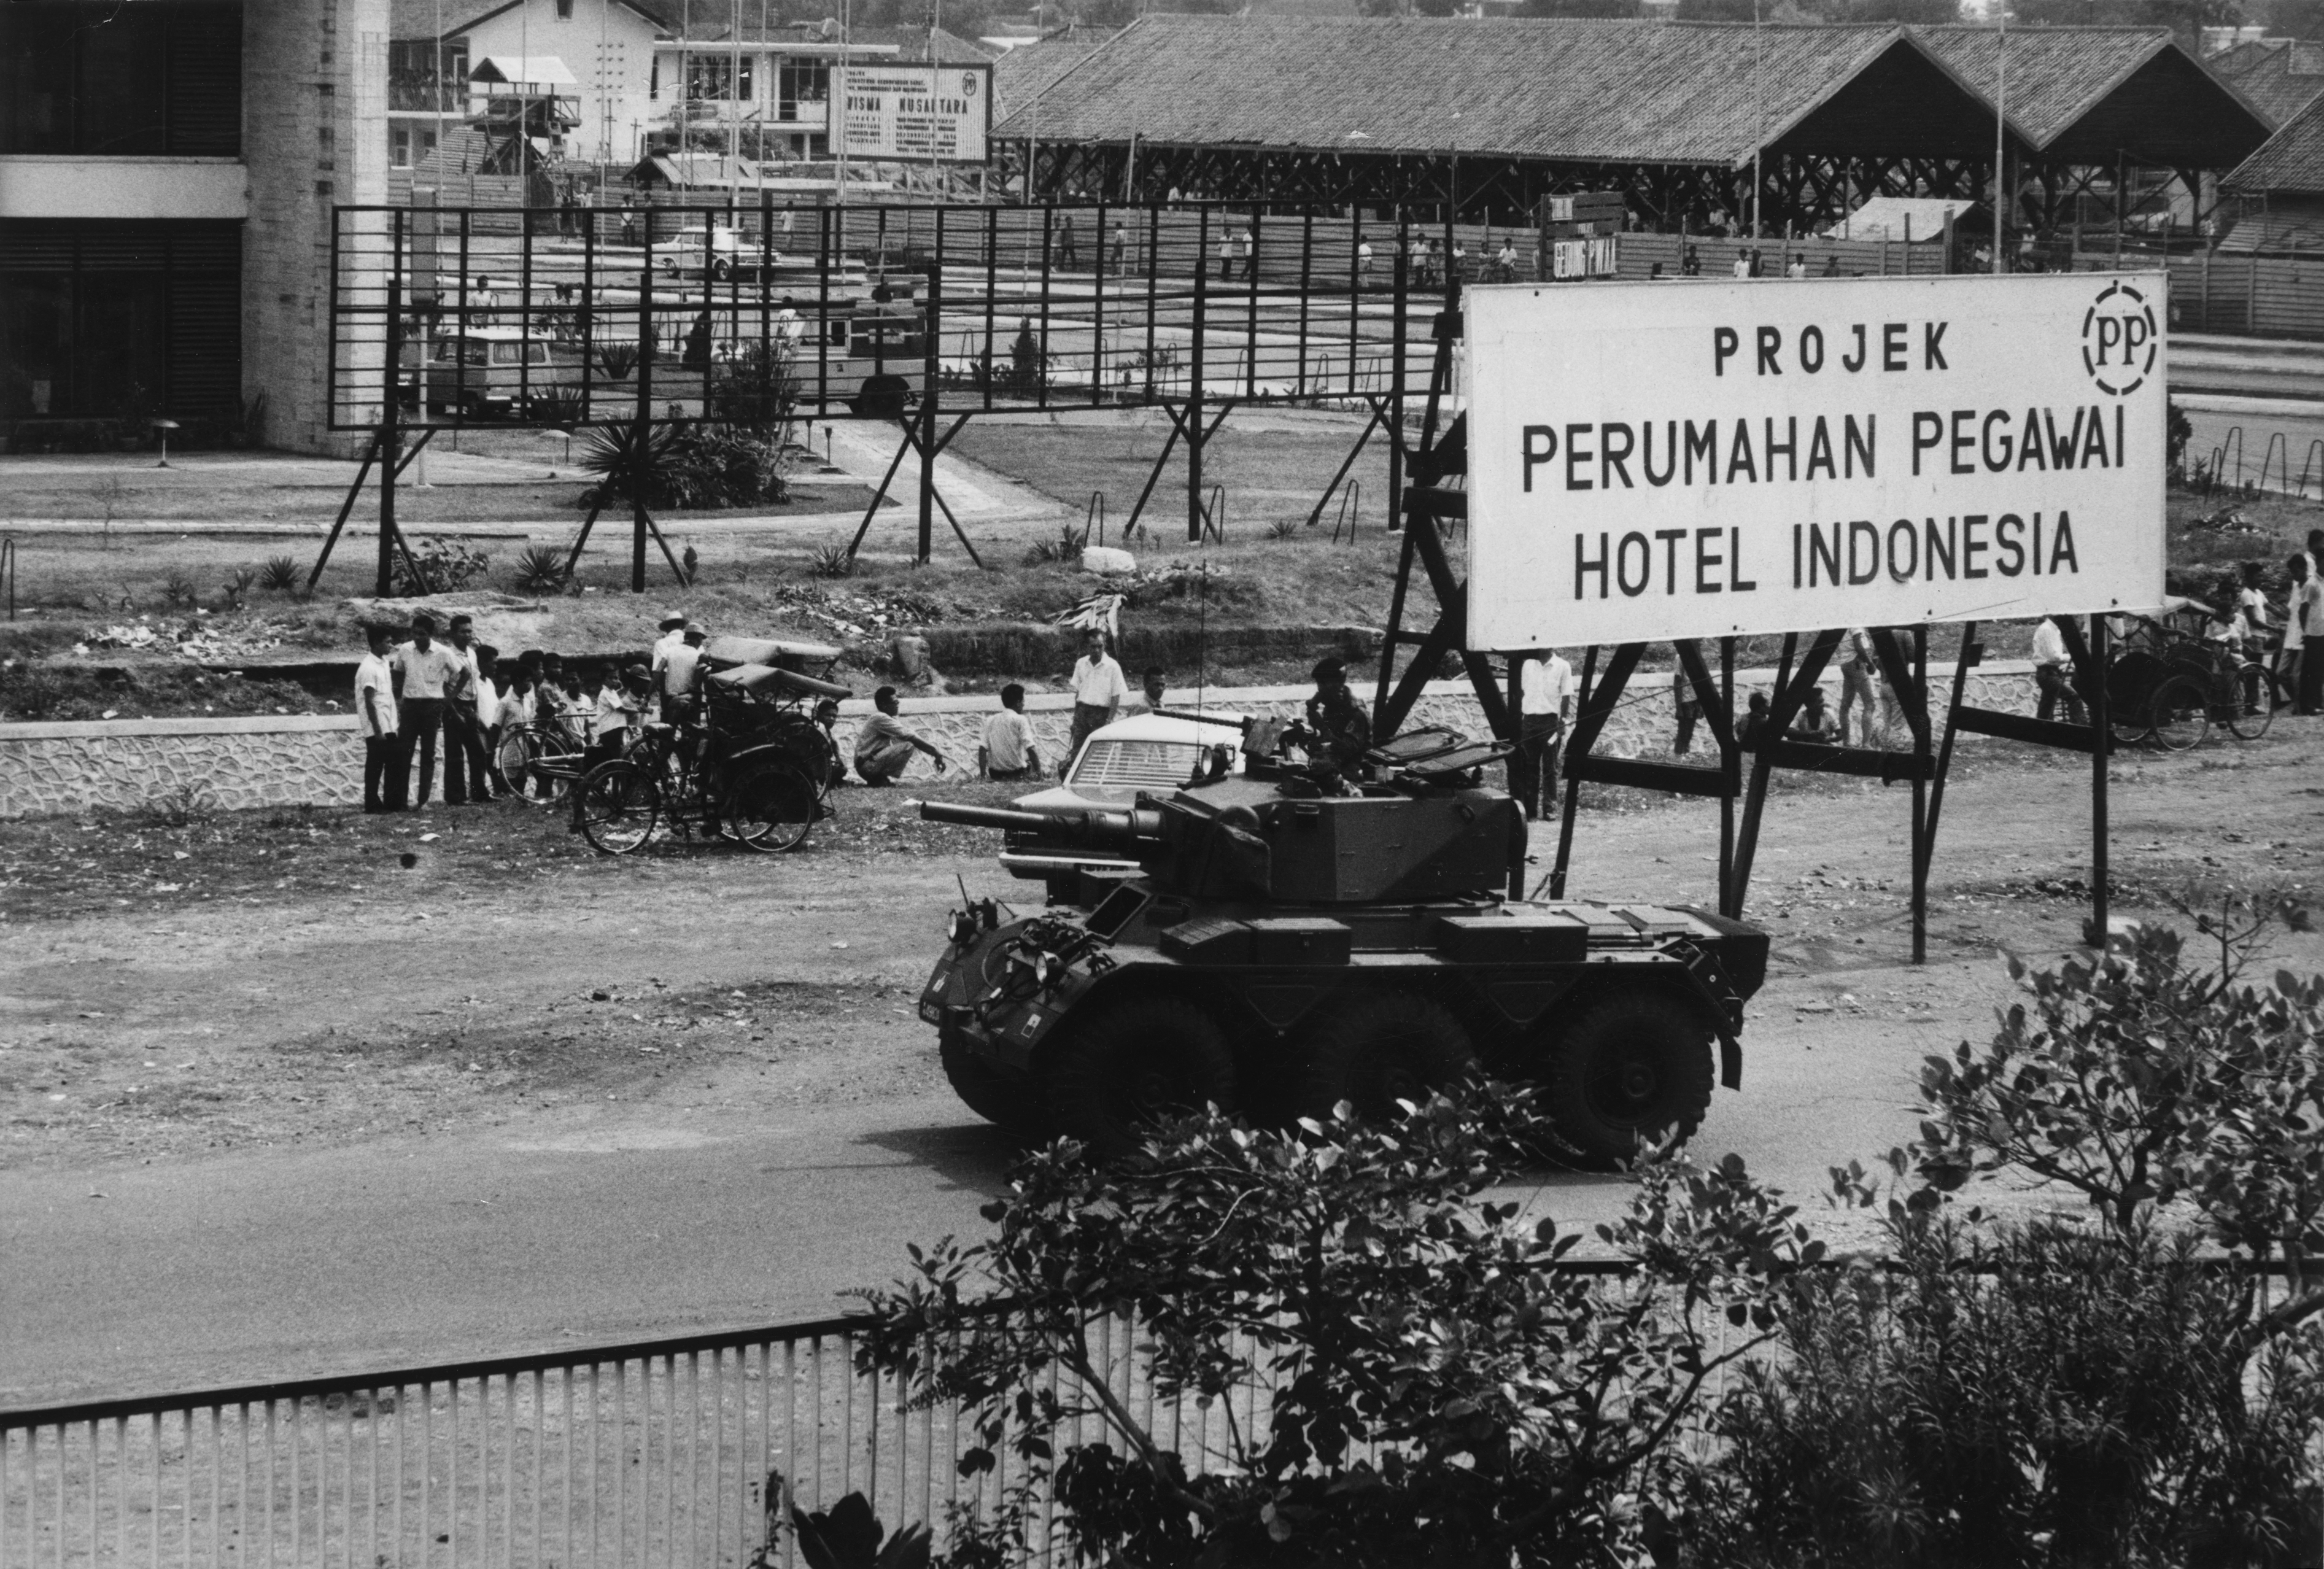 Indonesian troops prepare to open fire on the remaining raiders who participated in the previous day's communist abortive coup in Jakarta, Indonesia on October 2, 1965. Photo by Carol Goldstein/Keystone via Getty Images.